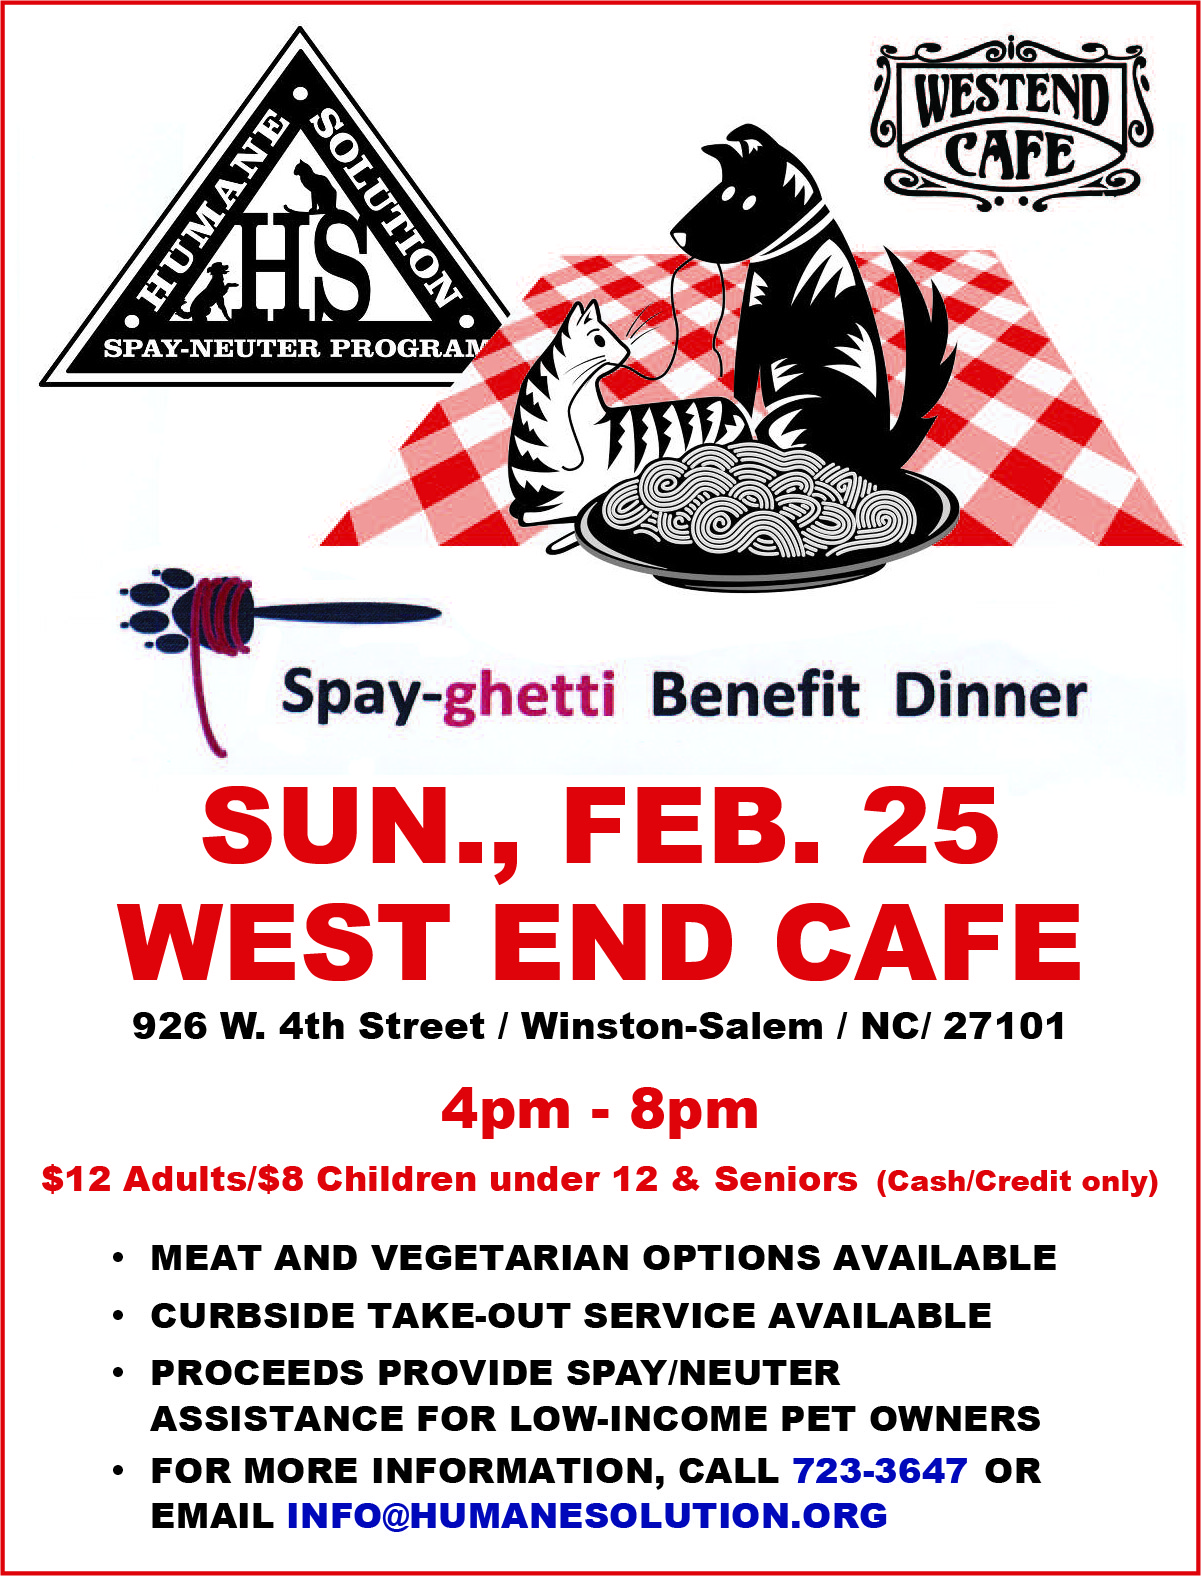 Spay-ghetti Benefit Dinner